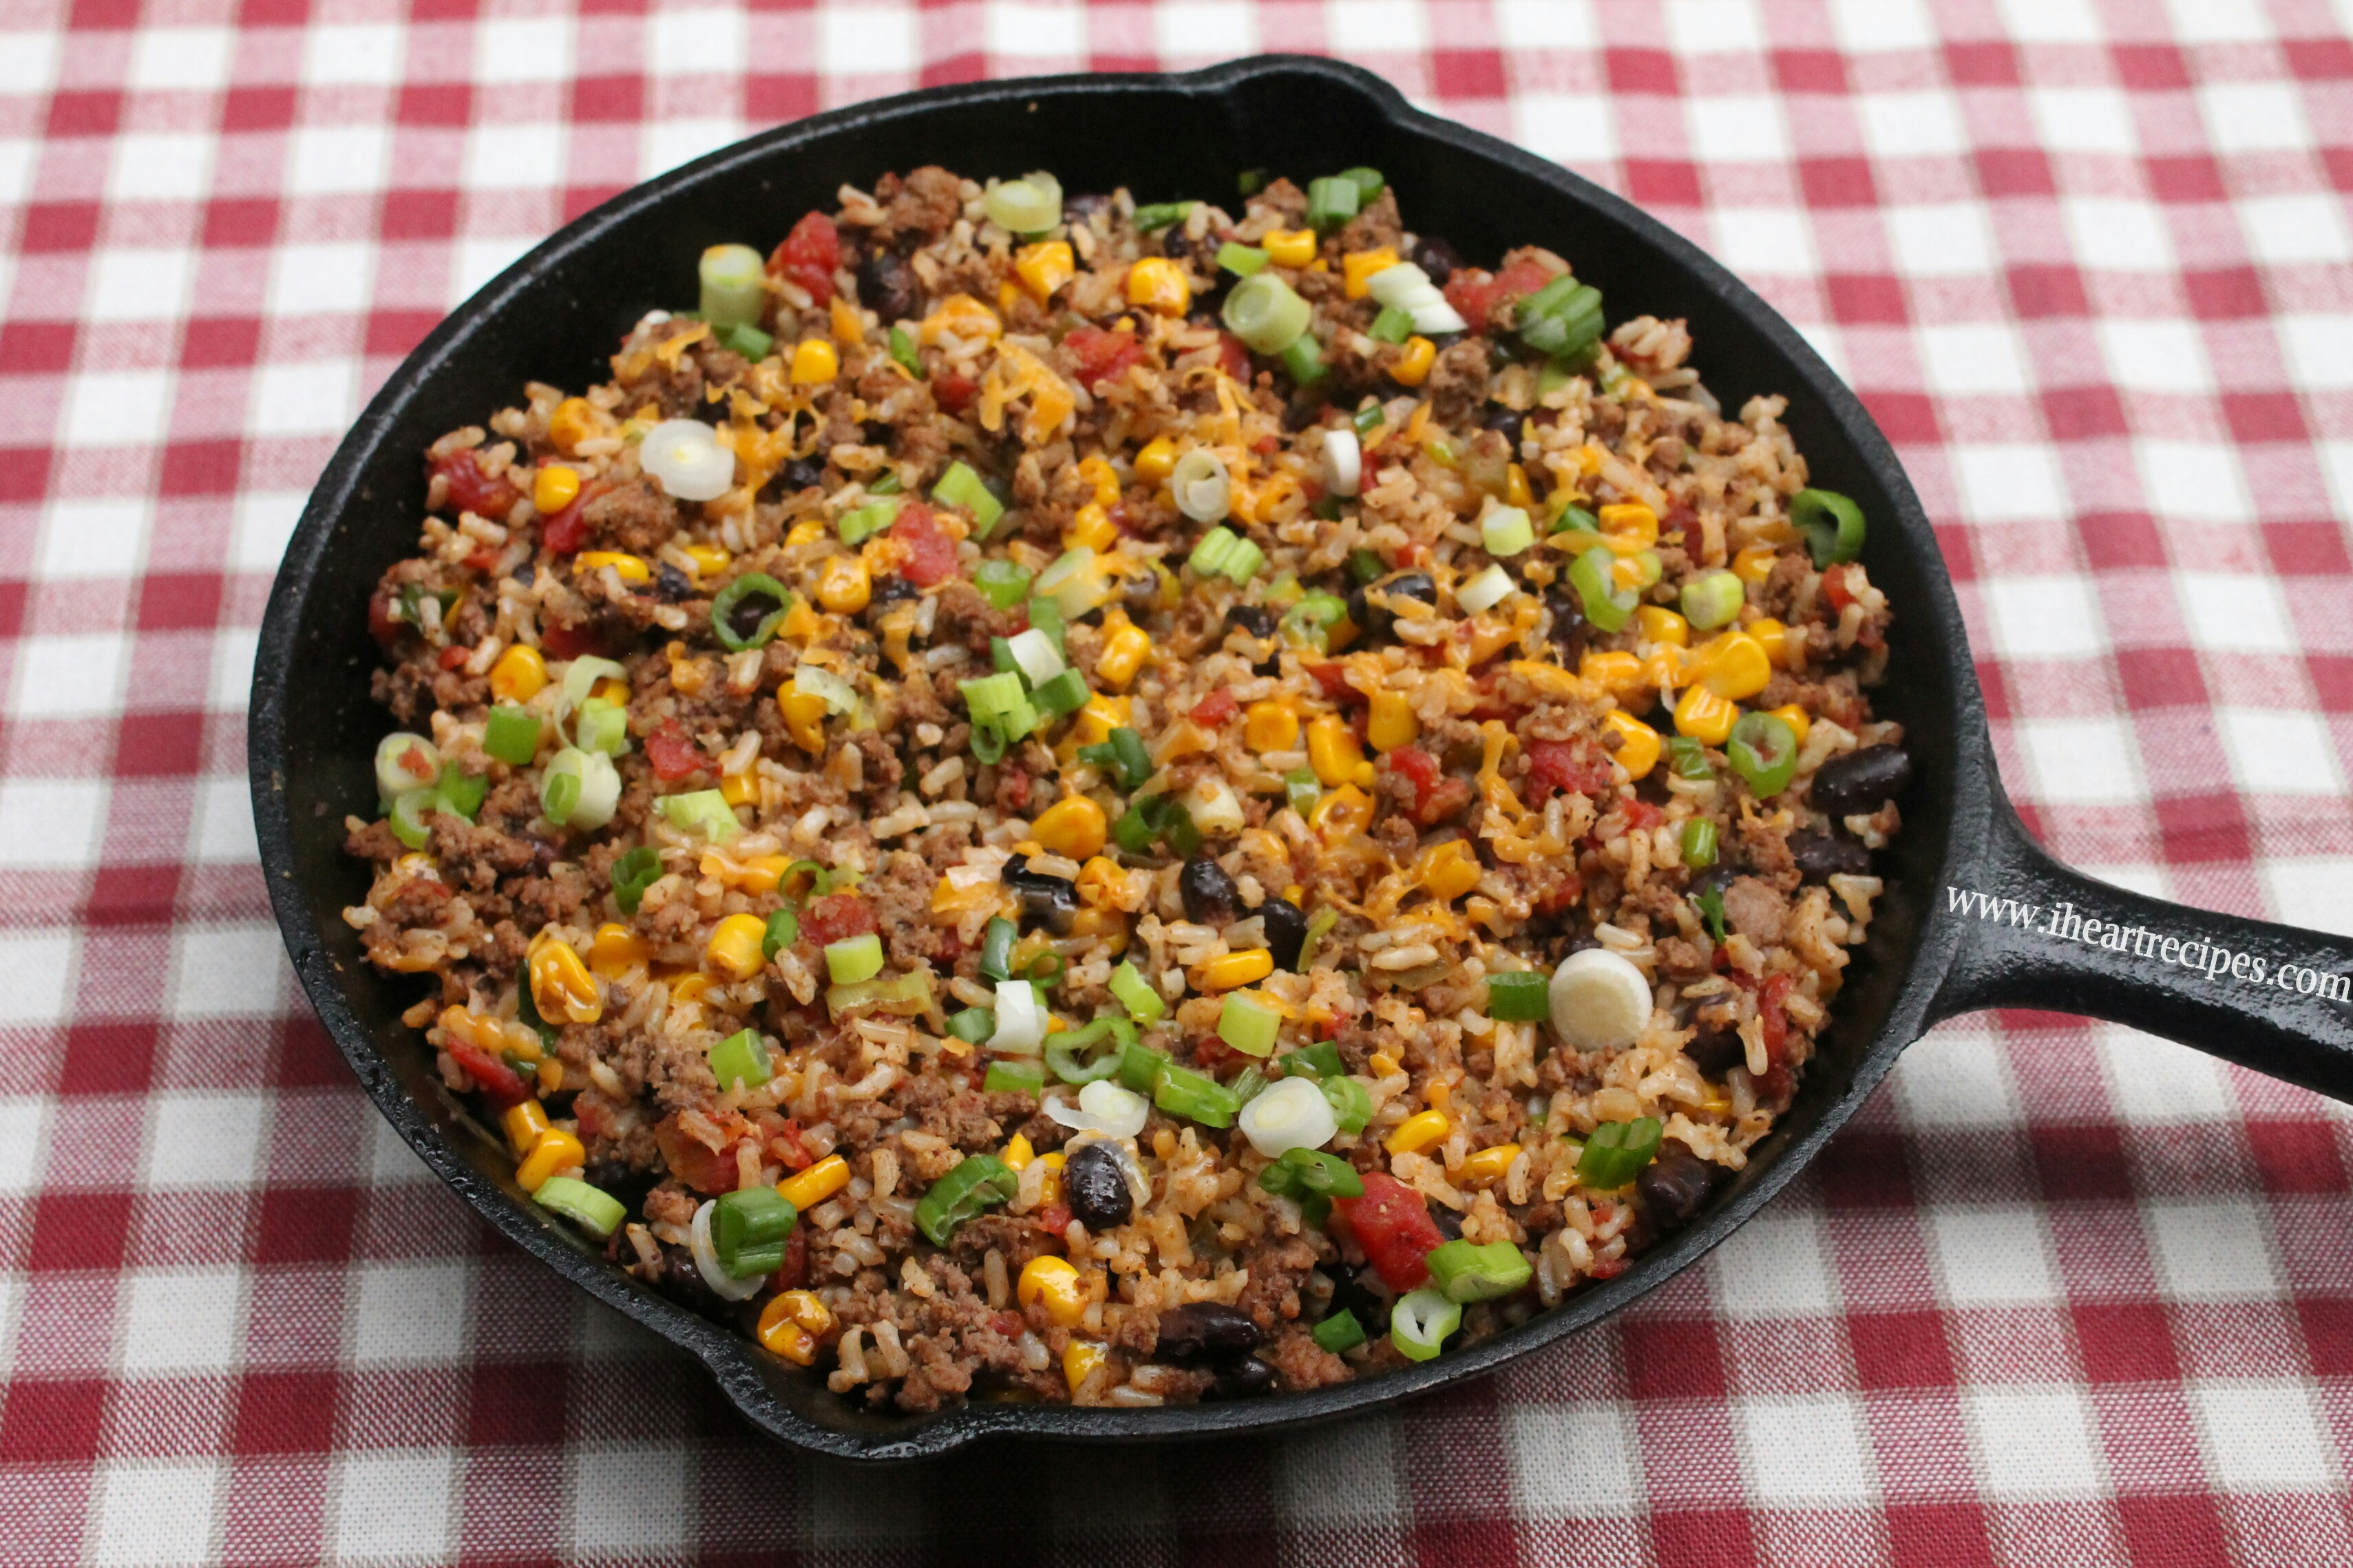 Check out how to cook this tex-mex-skillet at iheartrecipes.com